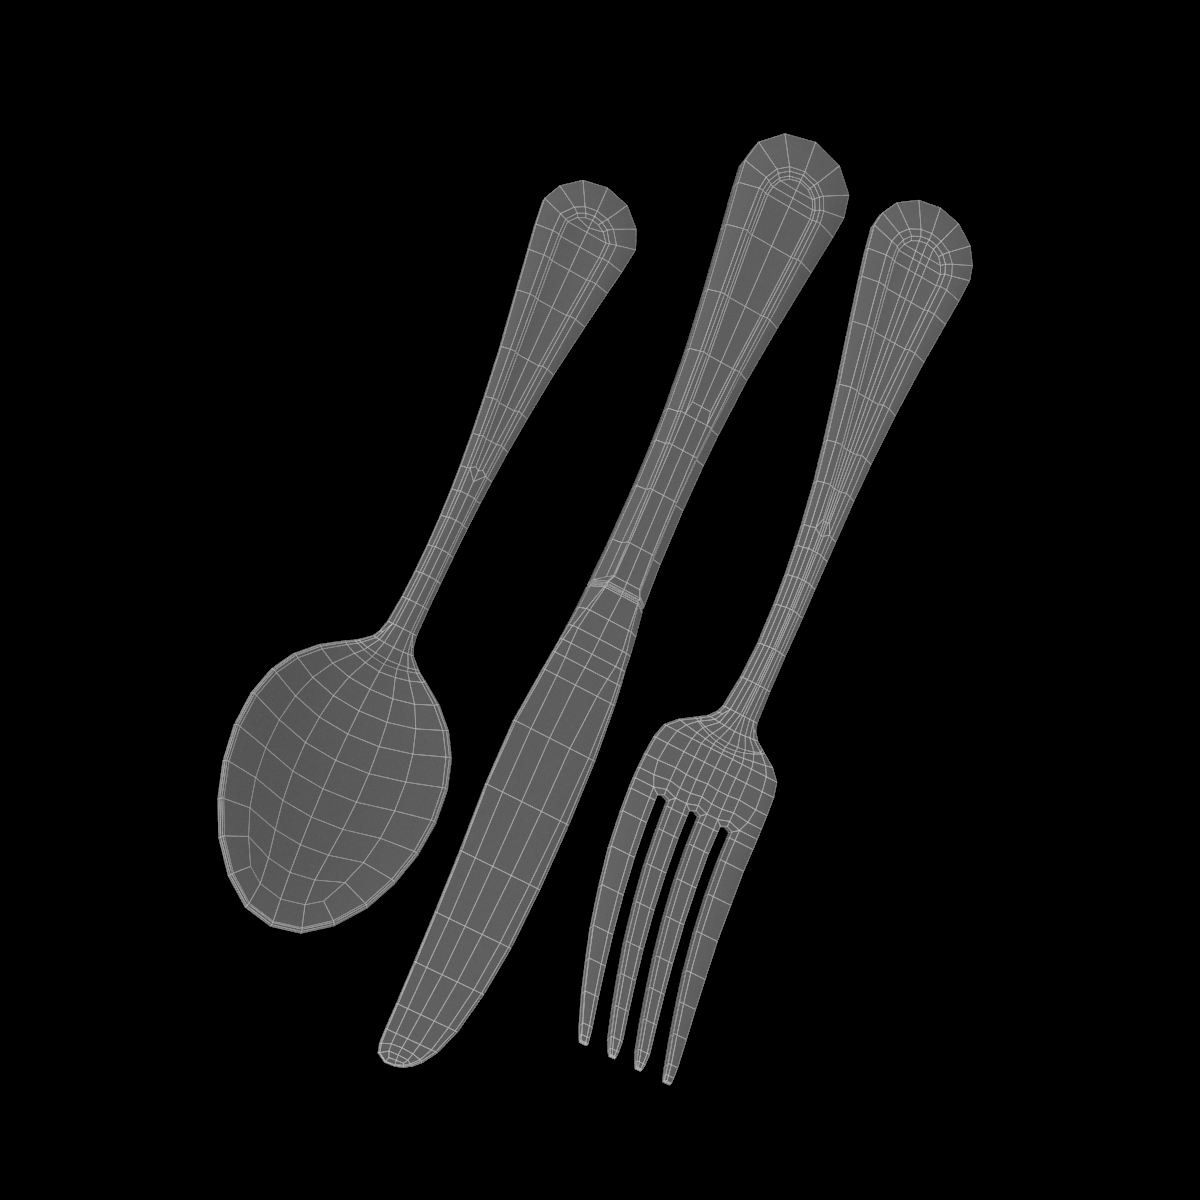 table dinner knife, fork, spoon classic cutlery 3d model 3ds max fbx c4d ma mb  obj 284627